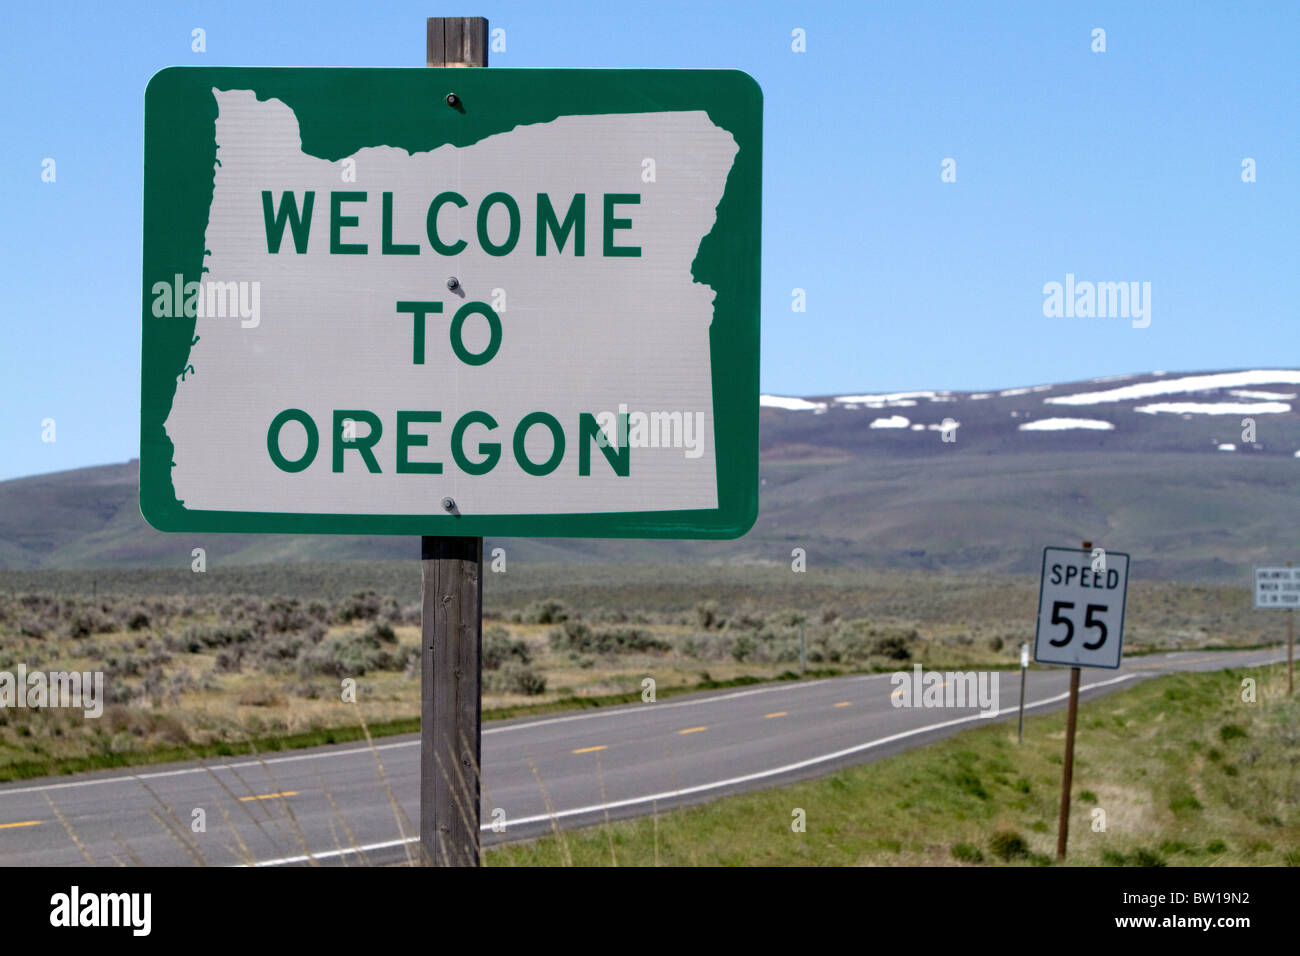 Welcome to Oregon road sign along U.S. Highway 95 at the Idaho/Oregon state border, USA. - Stock Image